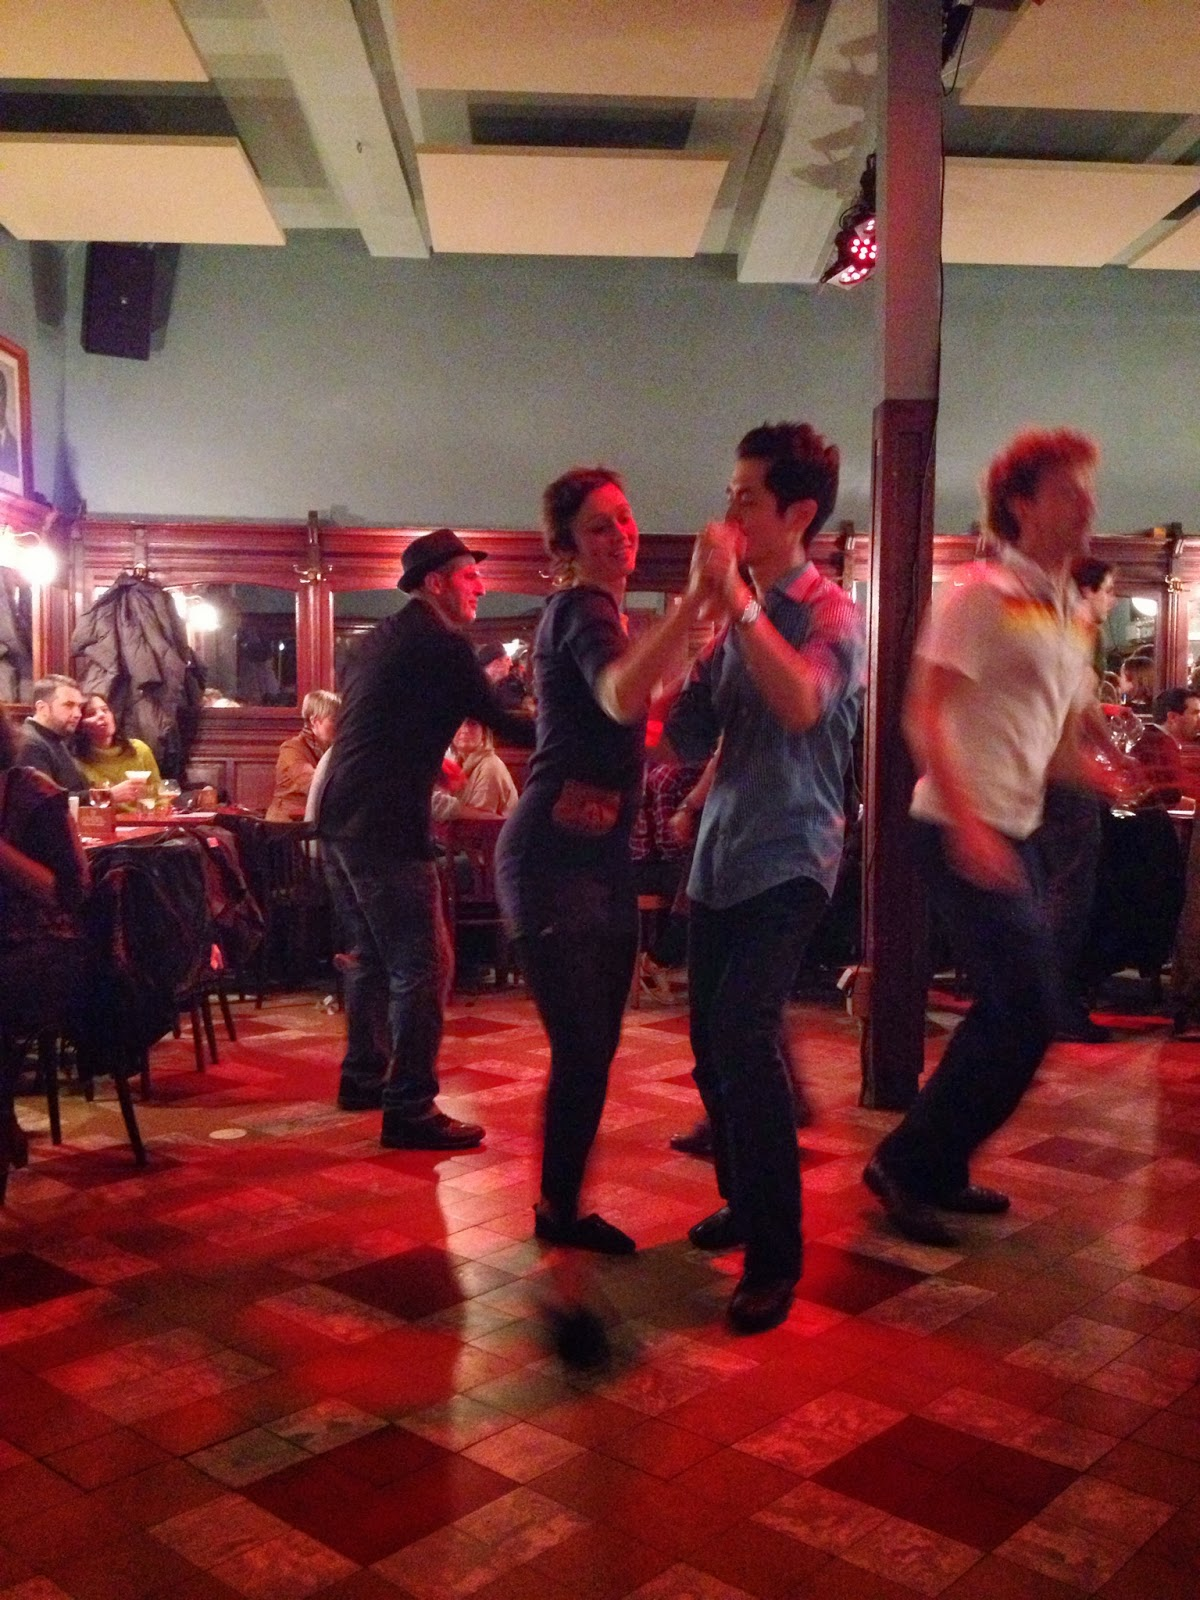 Brussels - Swing dancing at cafe/bar Monk